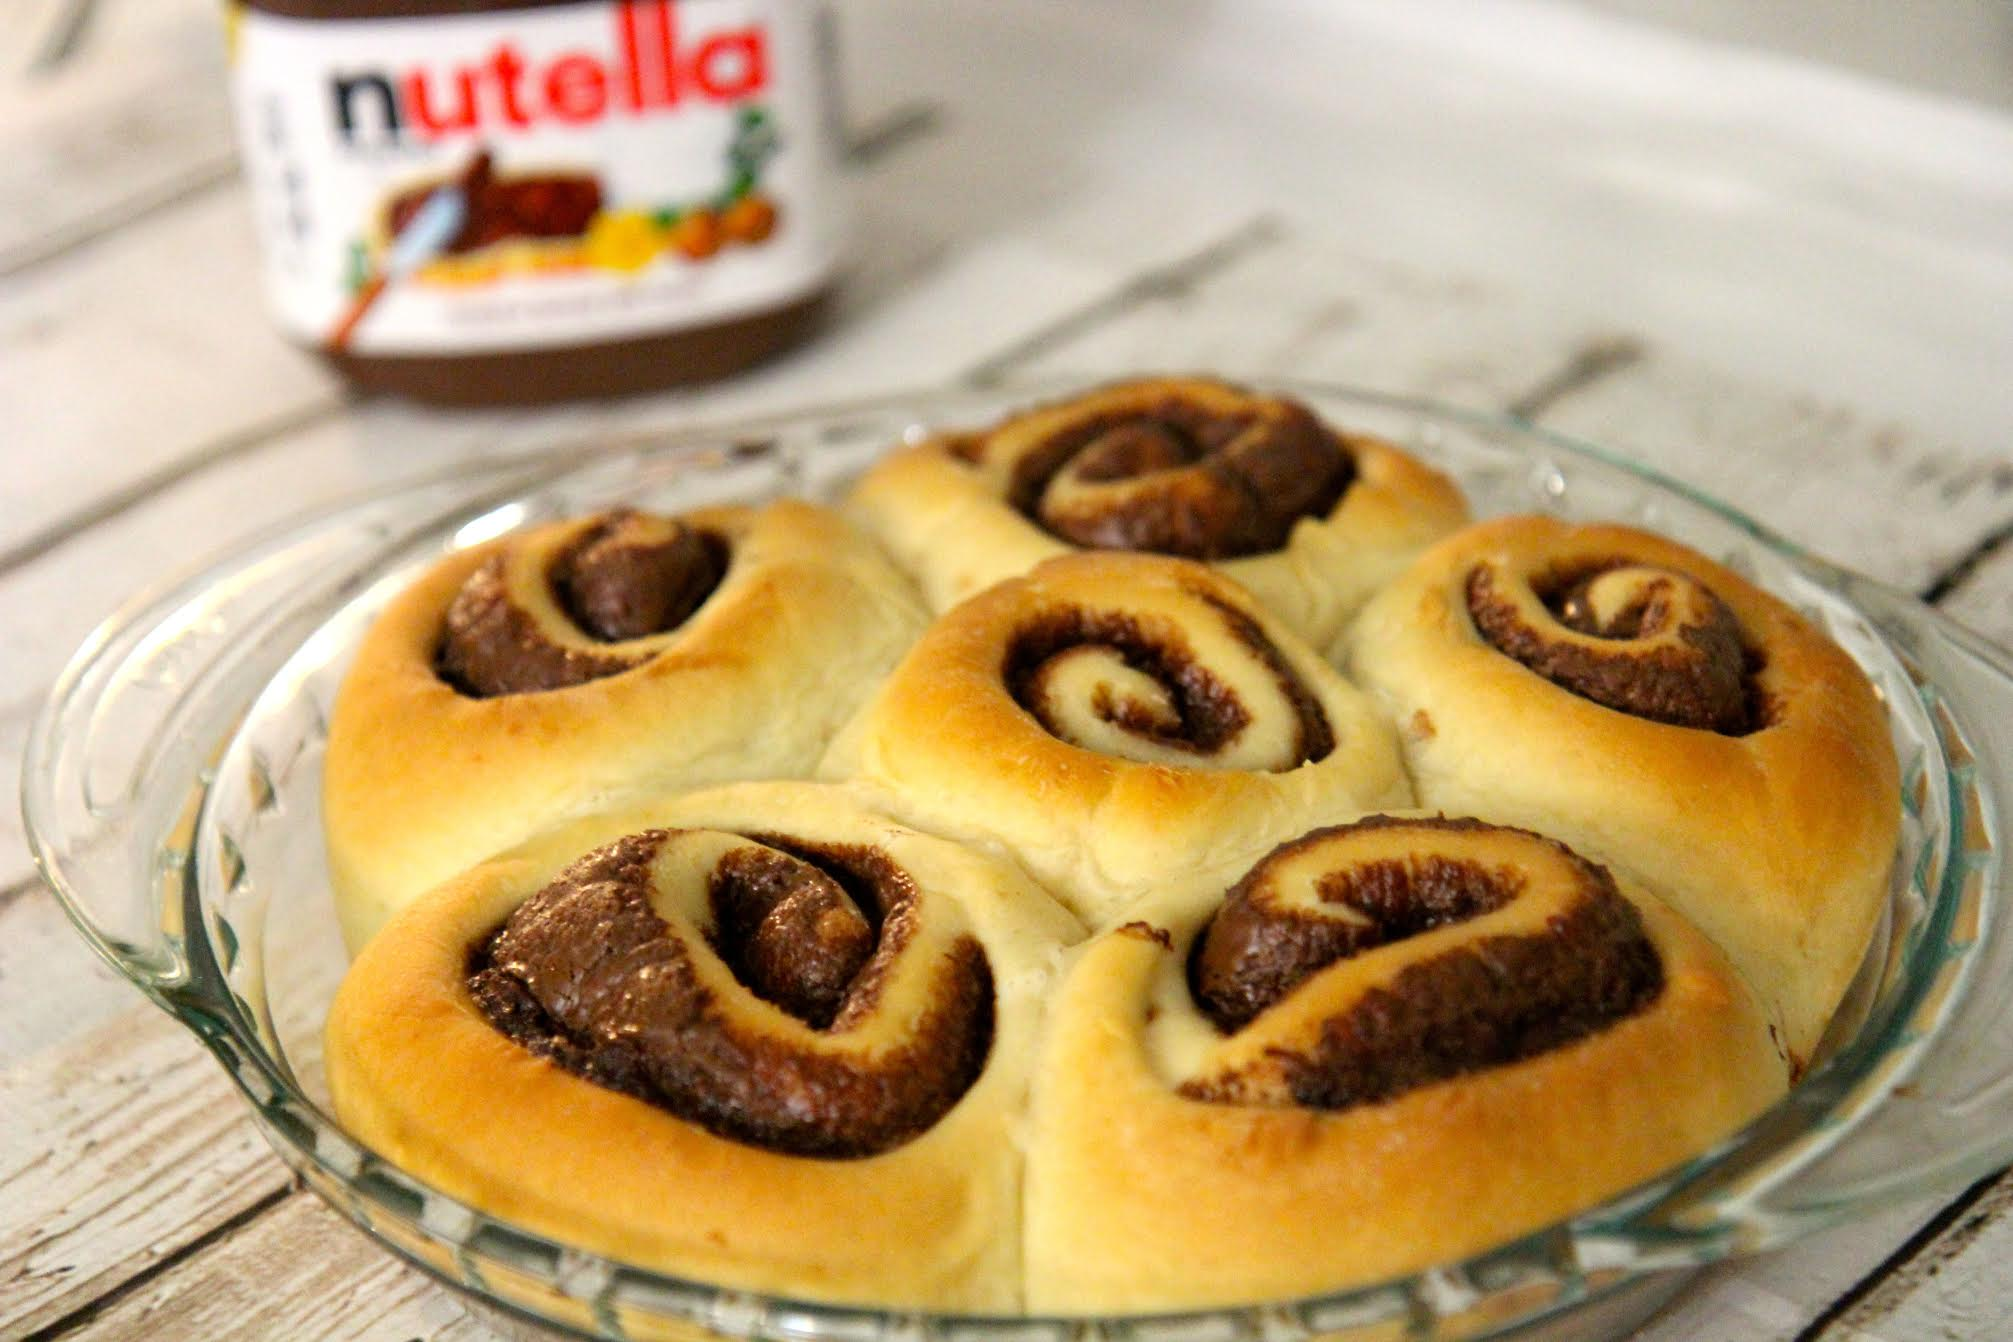 Soft and gooey homemade cinnamon rolls filled with Nutella